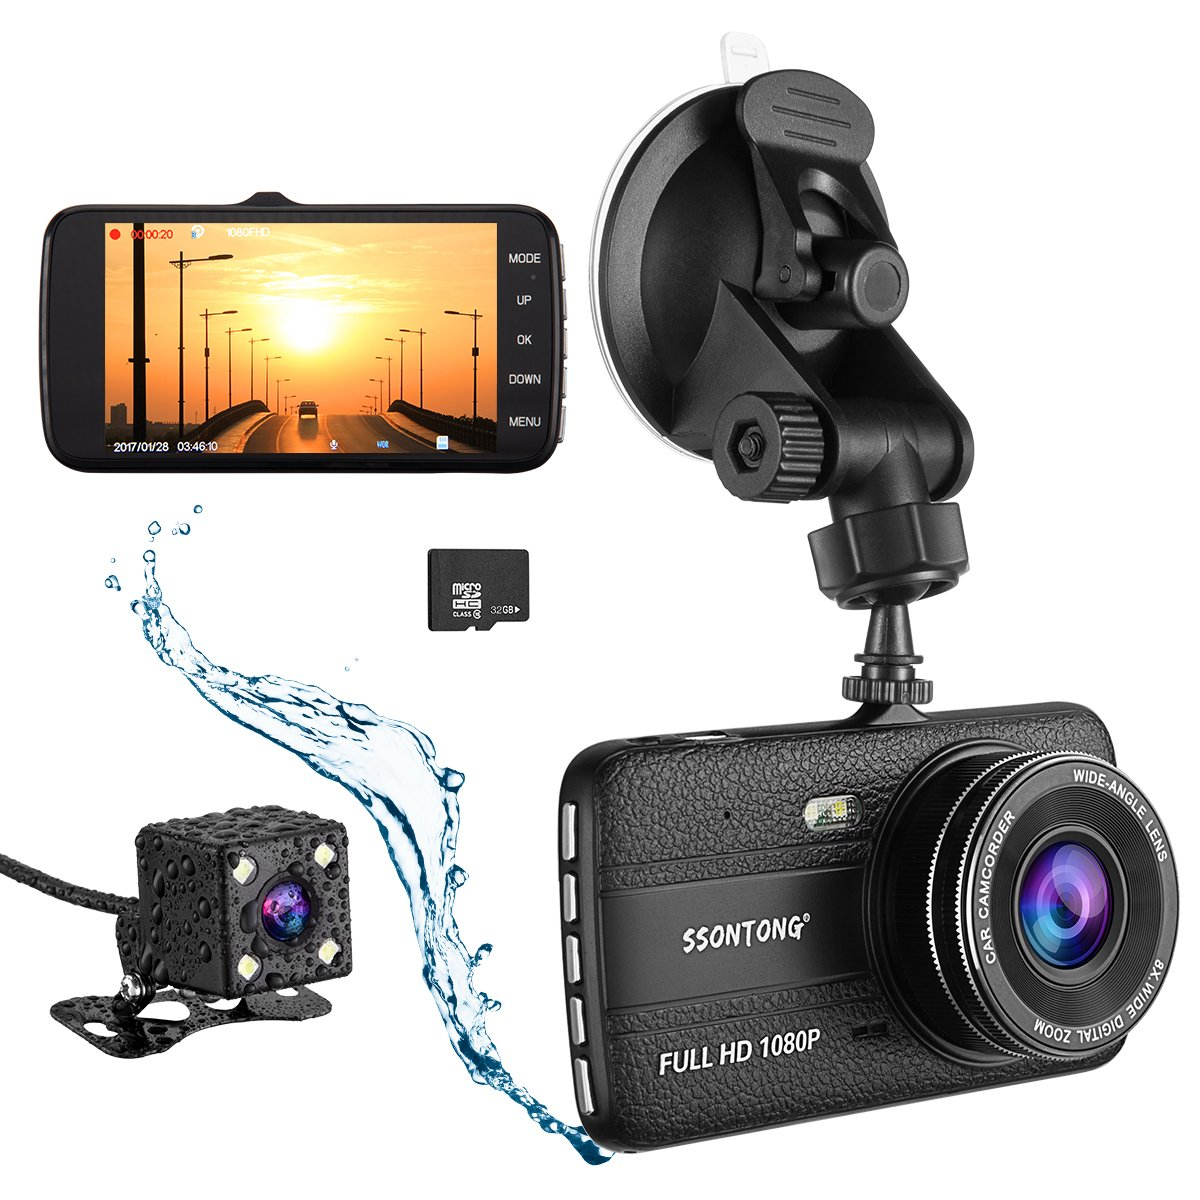 Dash Cam,Ssontong Dual Lens Car Front and Rear Channel Dashboard Camera Full HD 1080P,4.0'' Screen,170 Degree Wide Angle Vehicle On-dash Video Recorder Built In Night Vision,WDR,32GB SD Card included